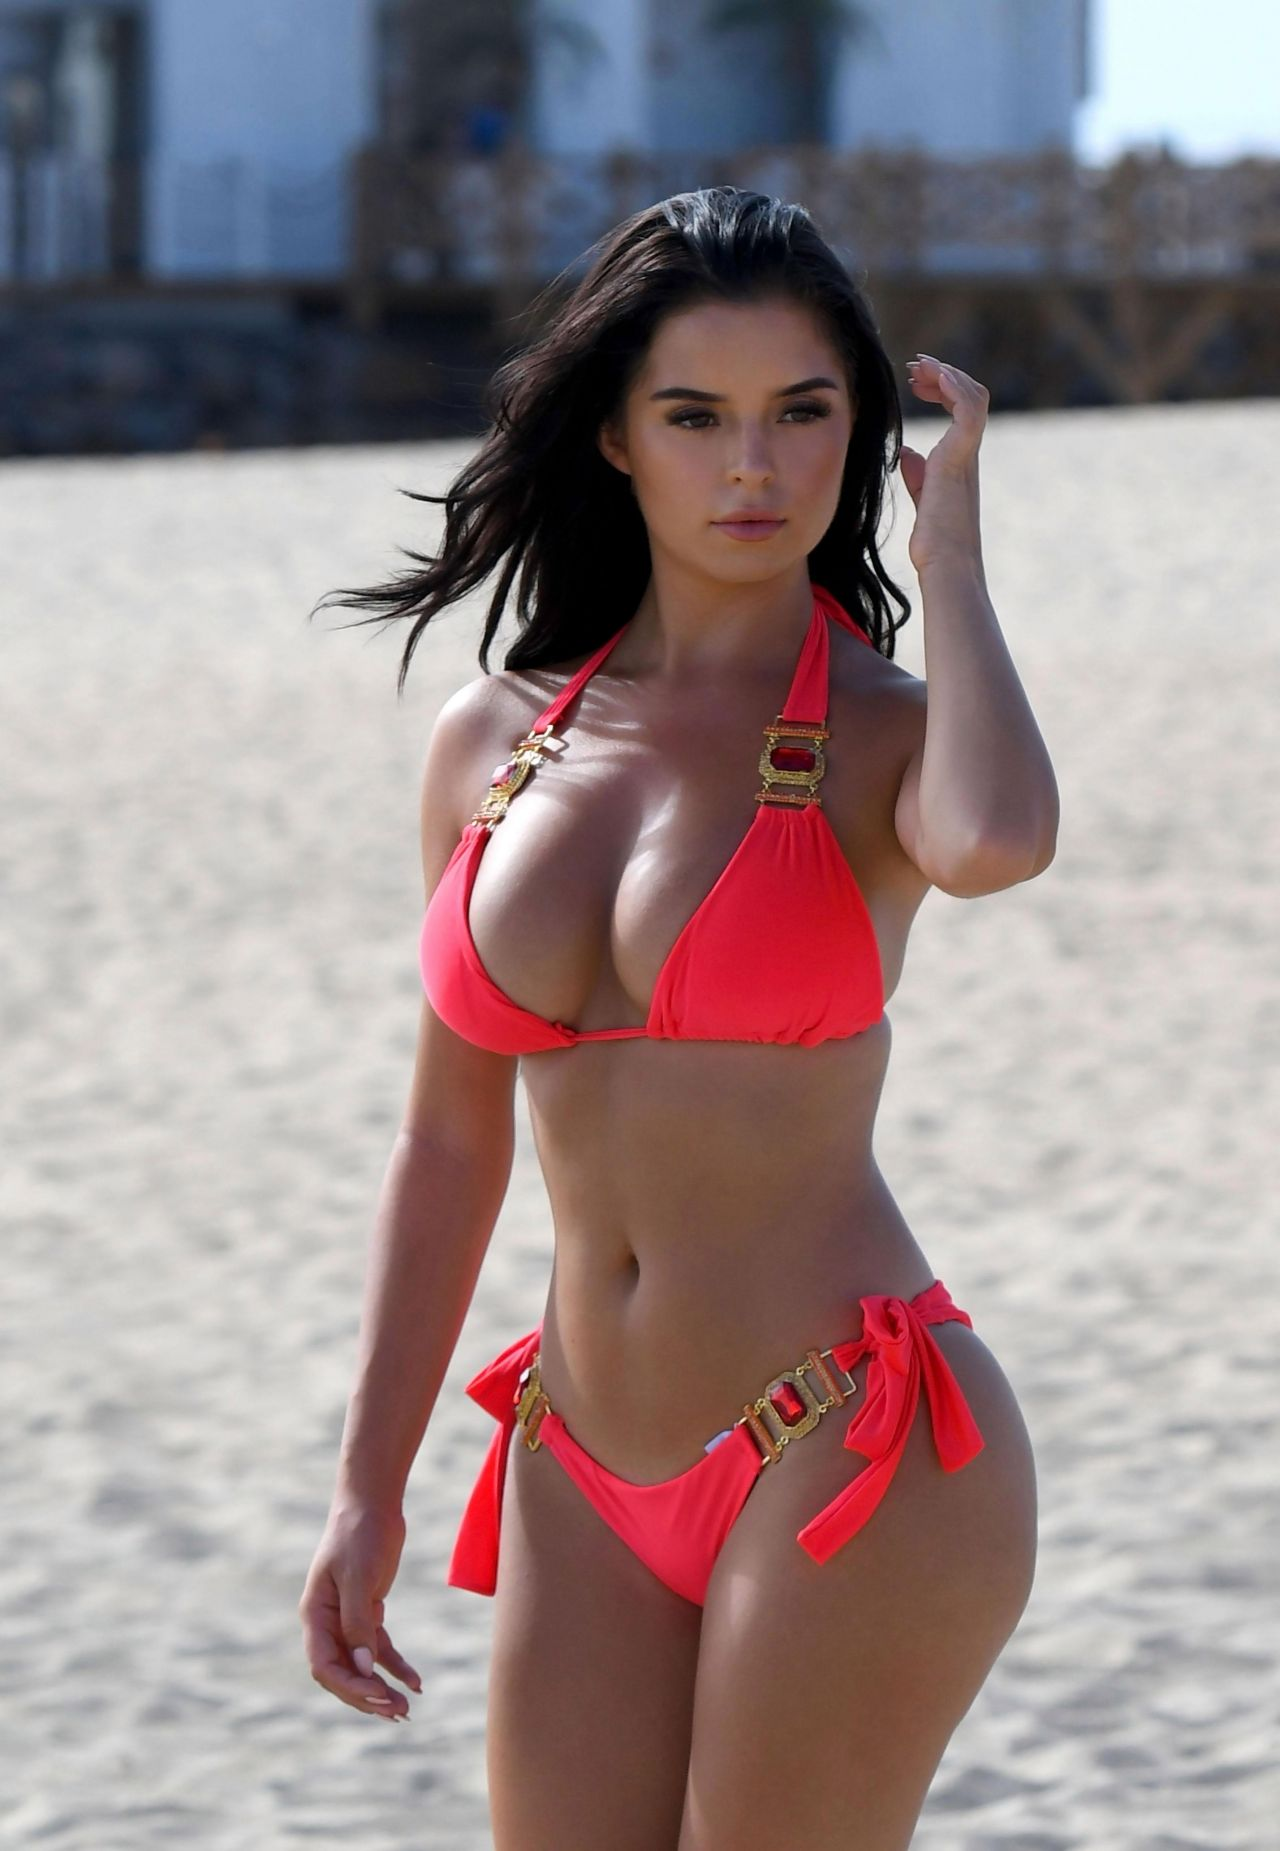 Demi Rose in Pink Bikini at a Beach in Cape Verde Pic 9 of 35